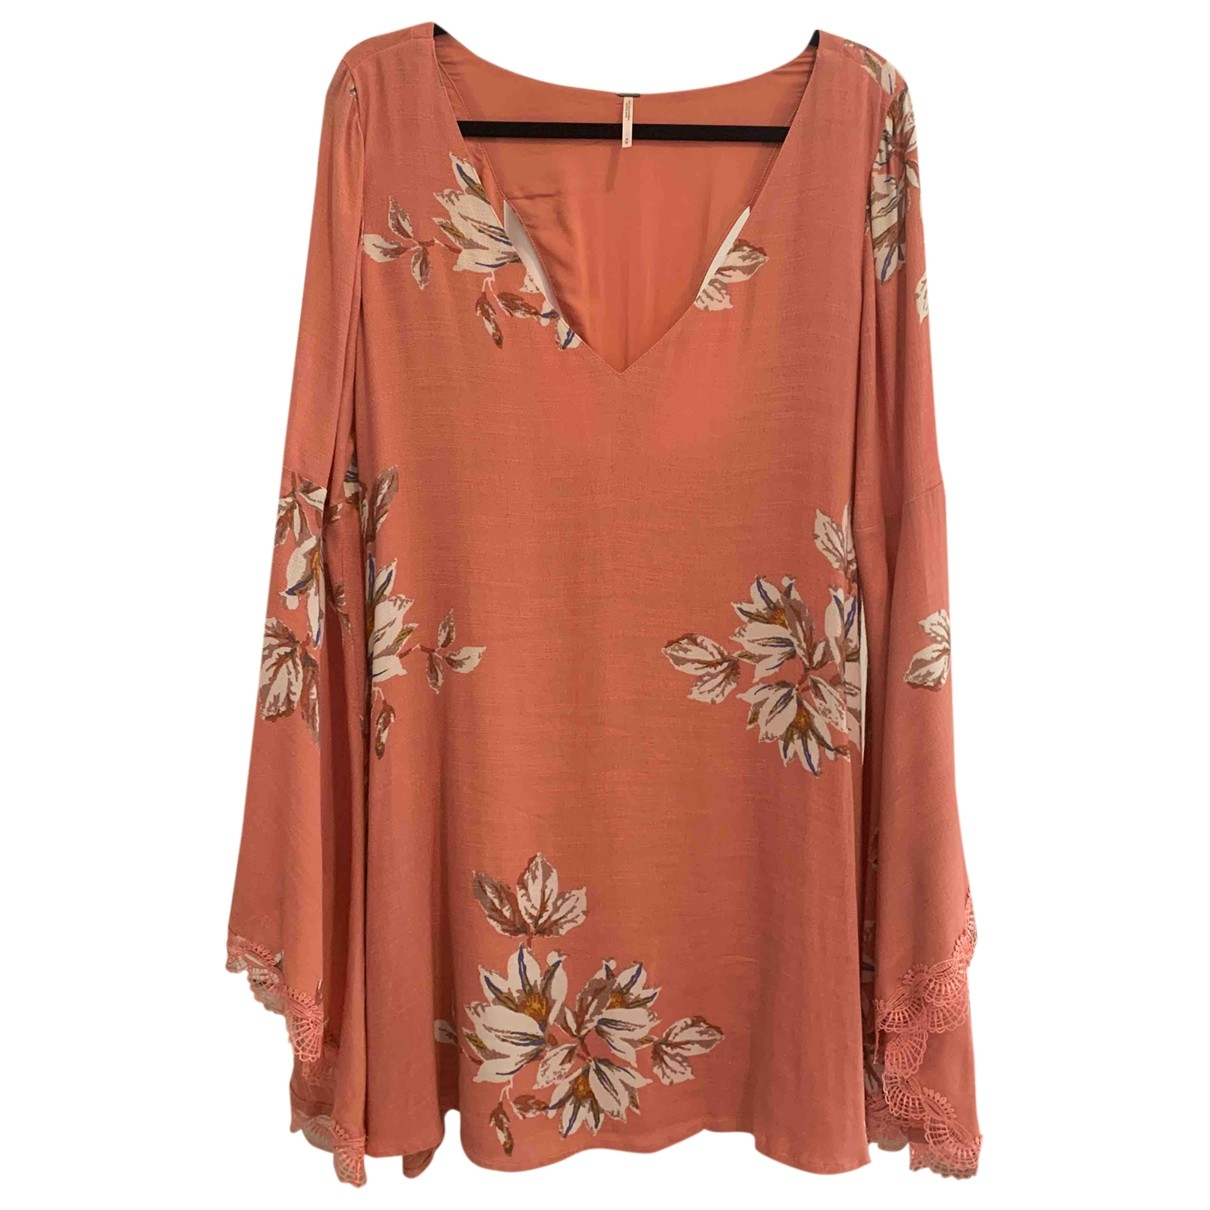 Free People - Robe   pour femme